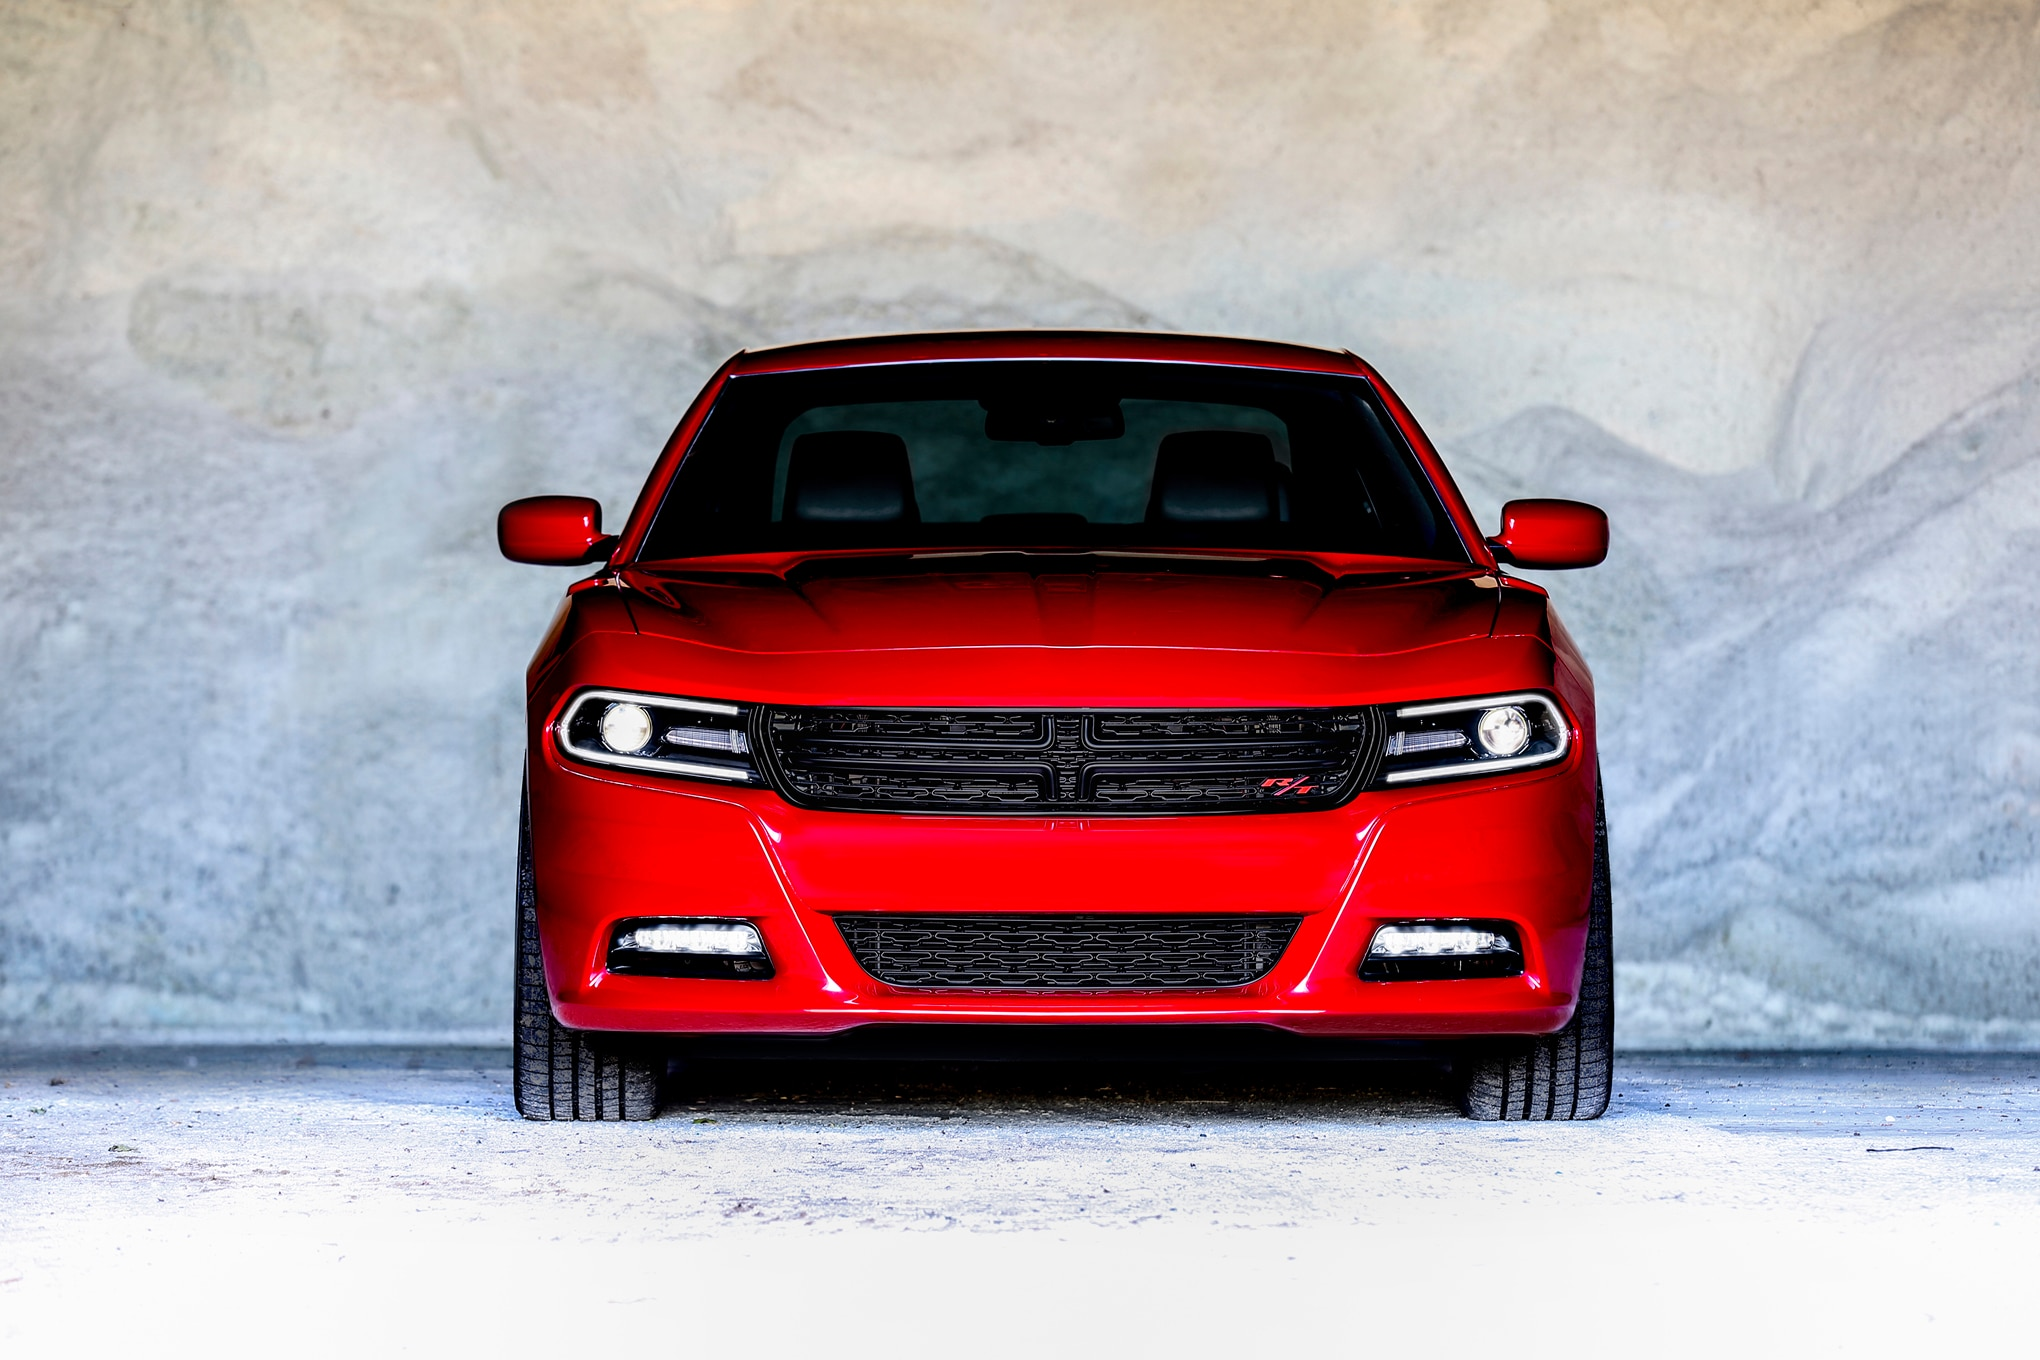 Rt 22 Honda >> 2016 Dodge Charger R/T Scat Pack Quick Take Review ...